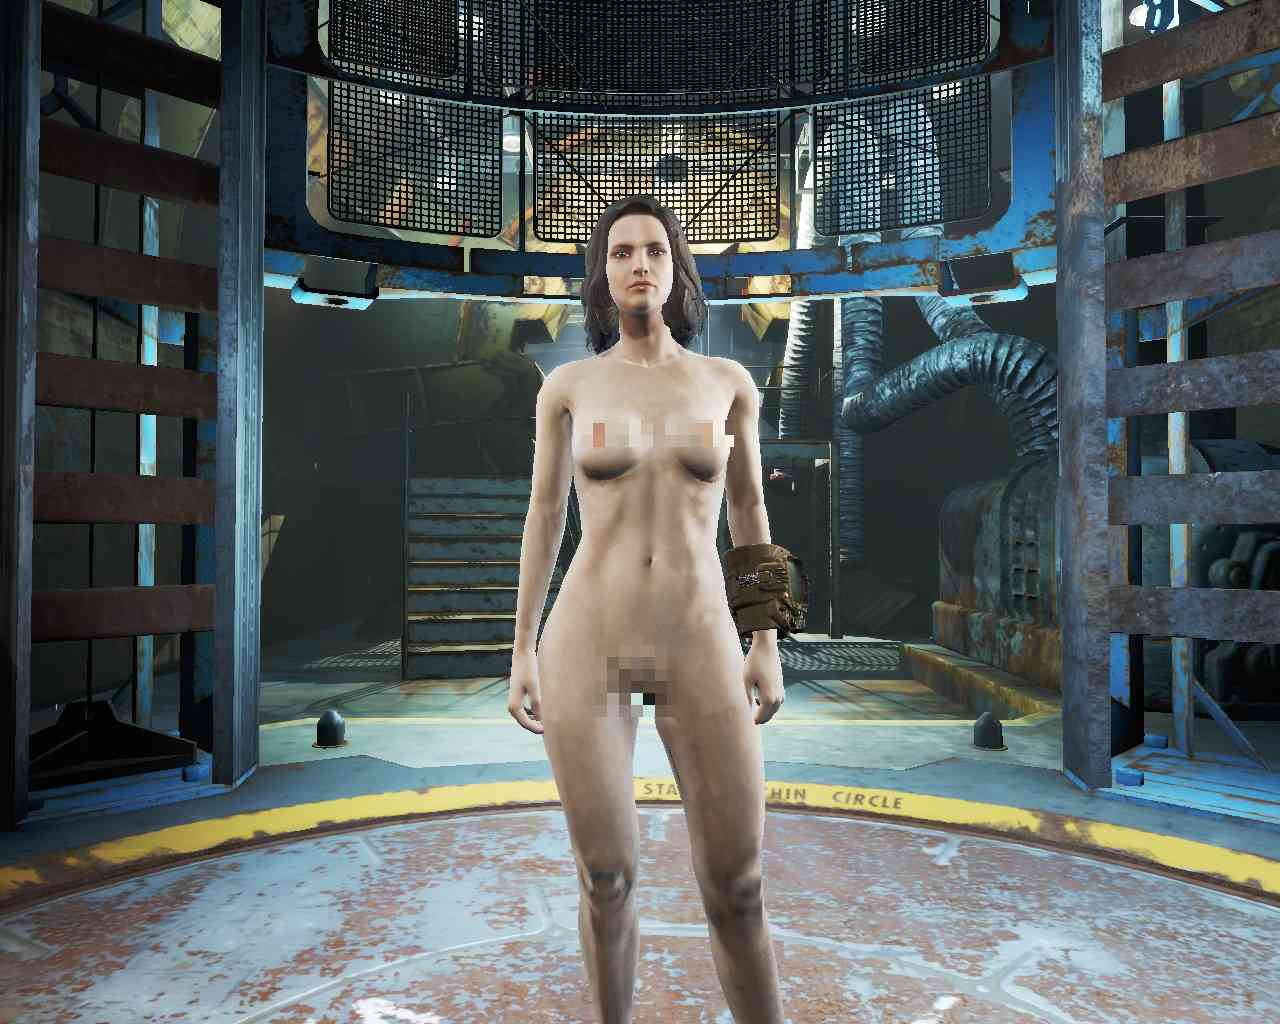 Halo 4 female nude mod xxx photo